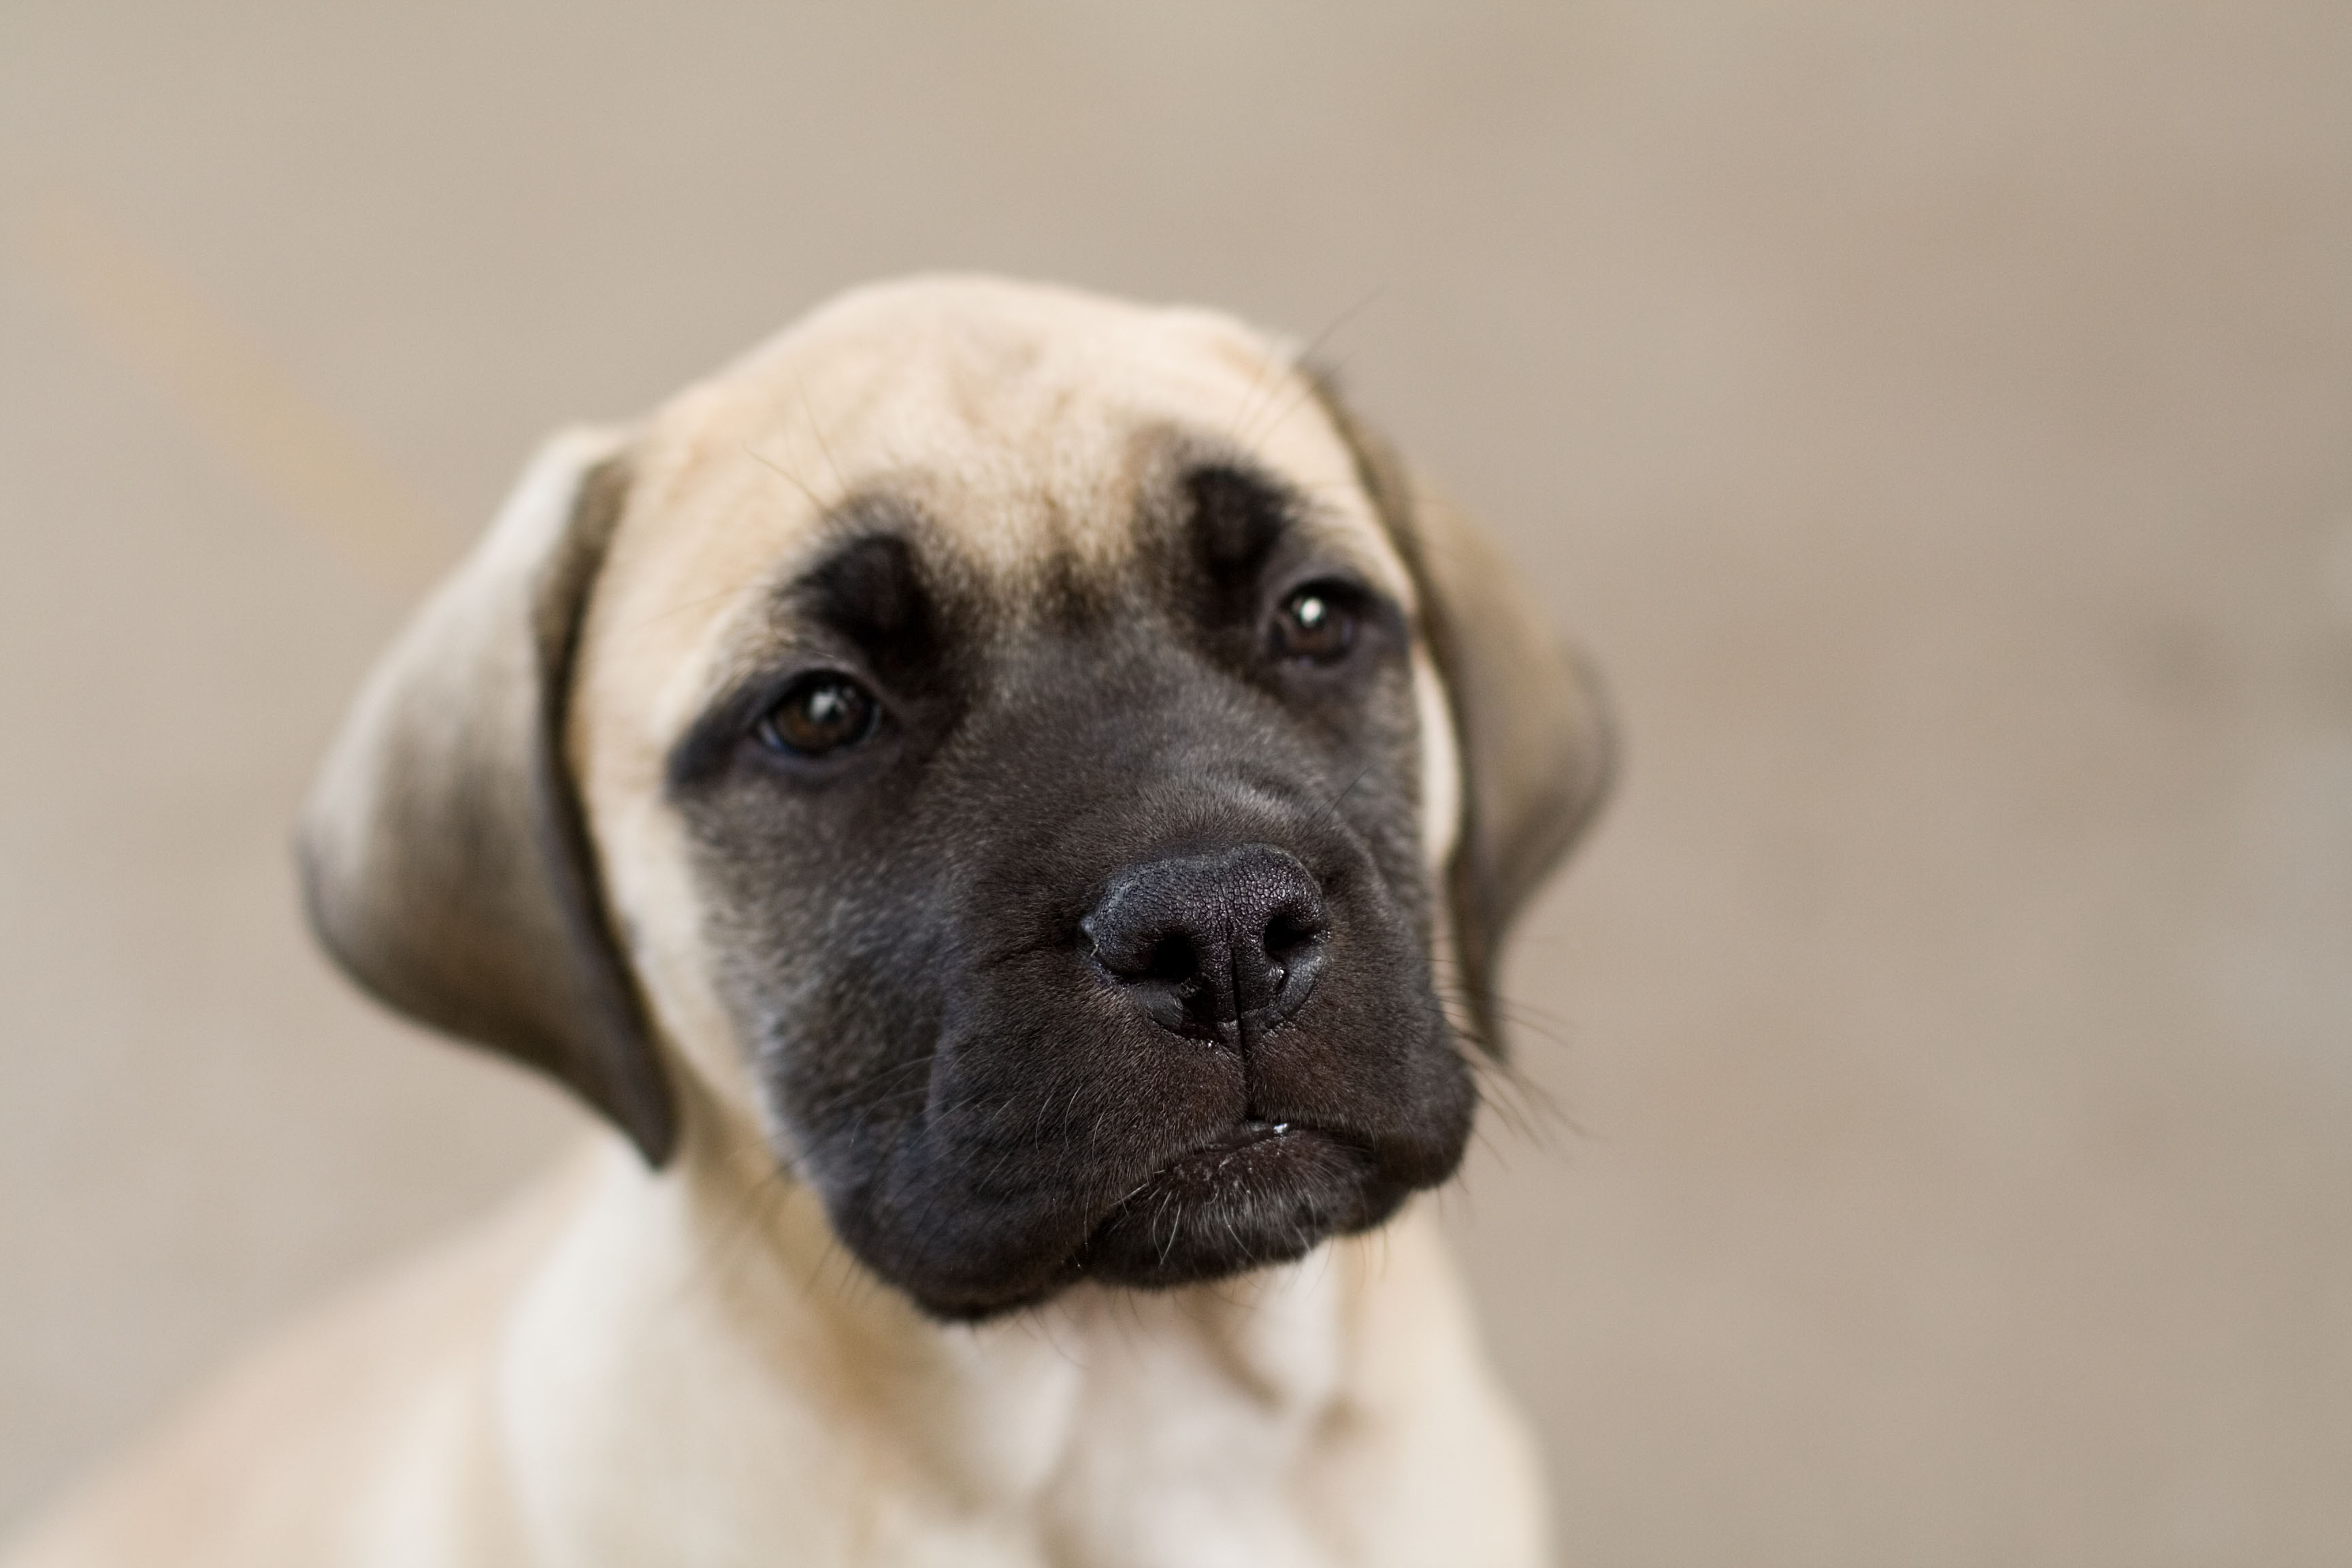 Bullmastiff Dogs For Sale South Africa